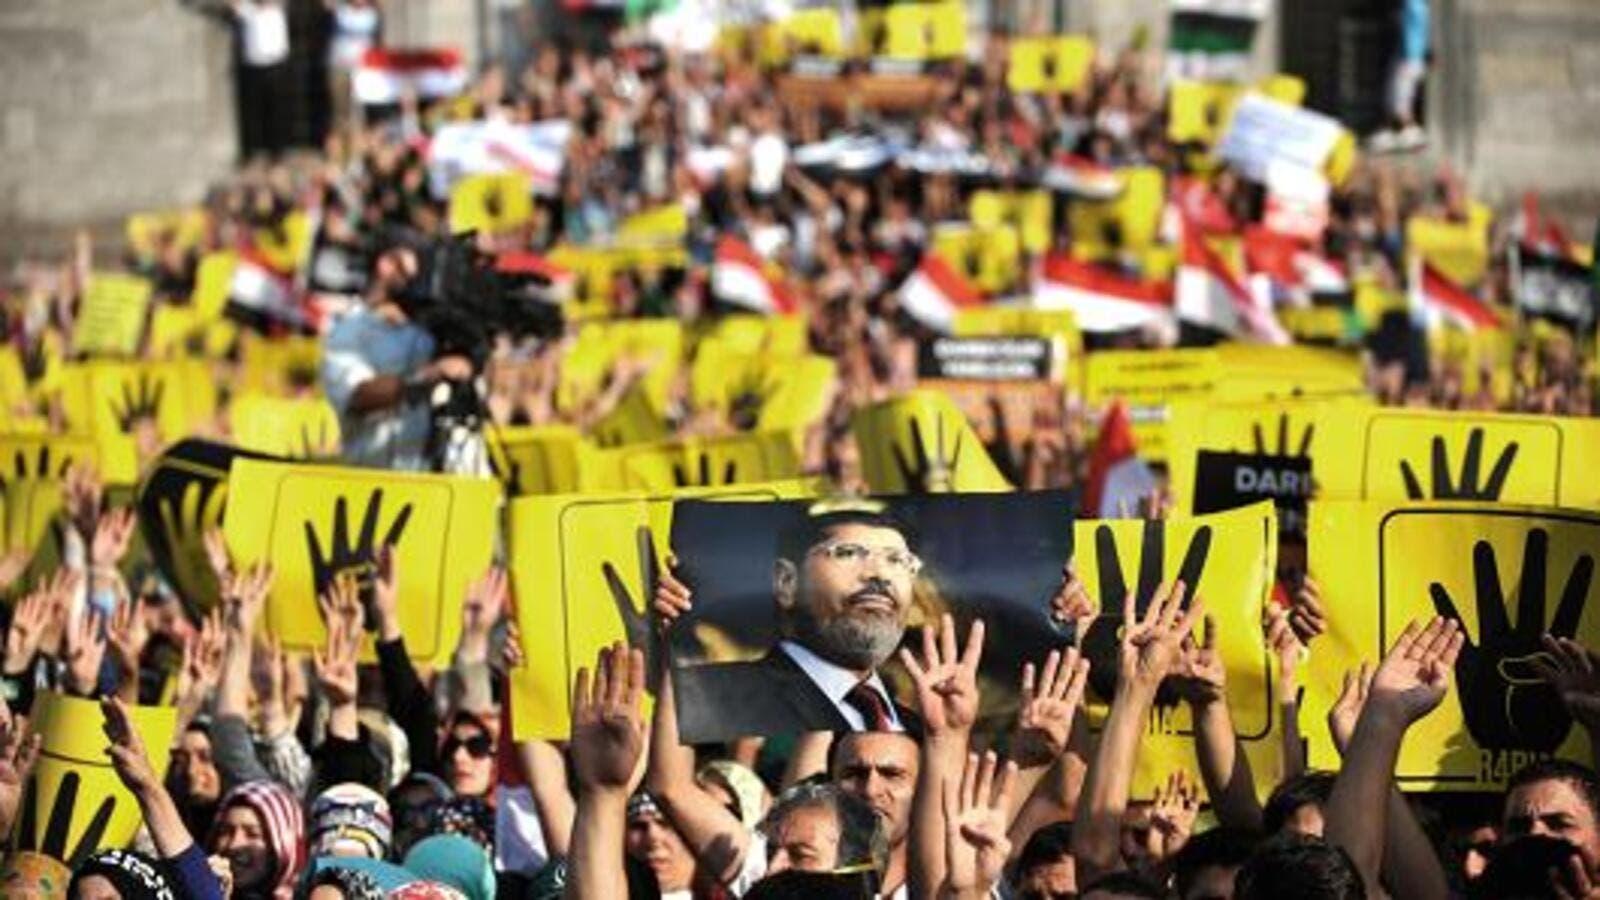 Supporters of the Egyptian Muslim Brotherhood gesture support for Morsi. (AFP/File)